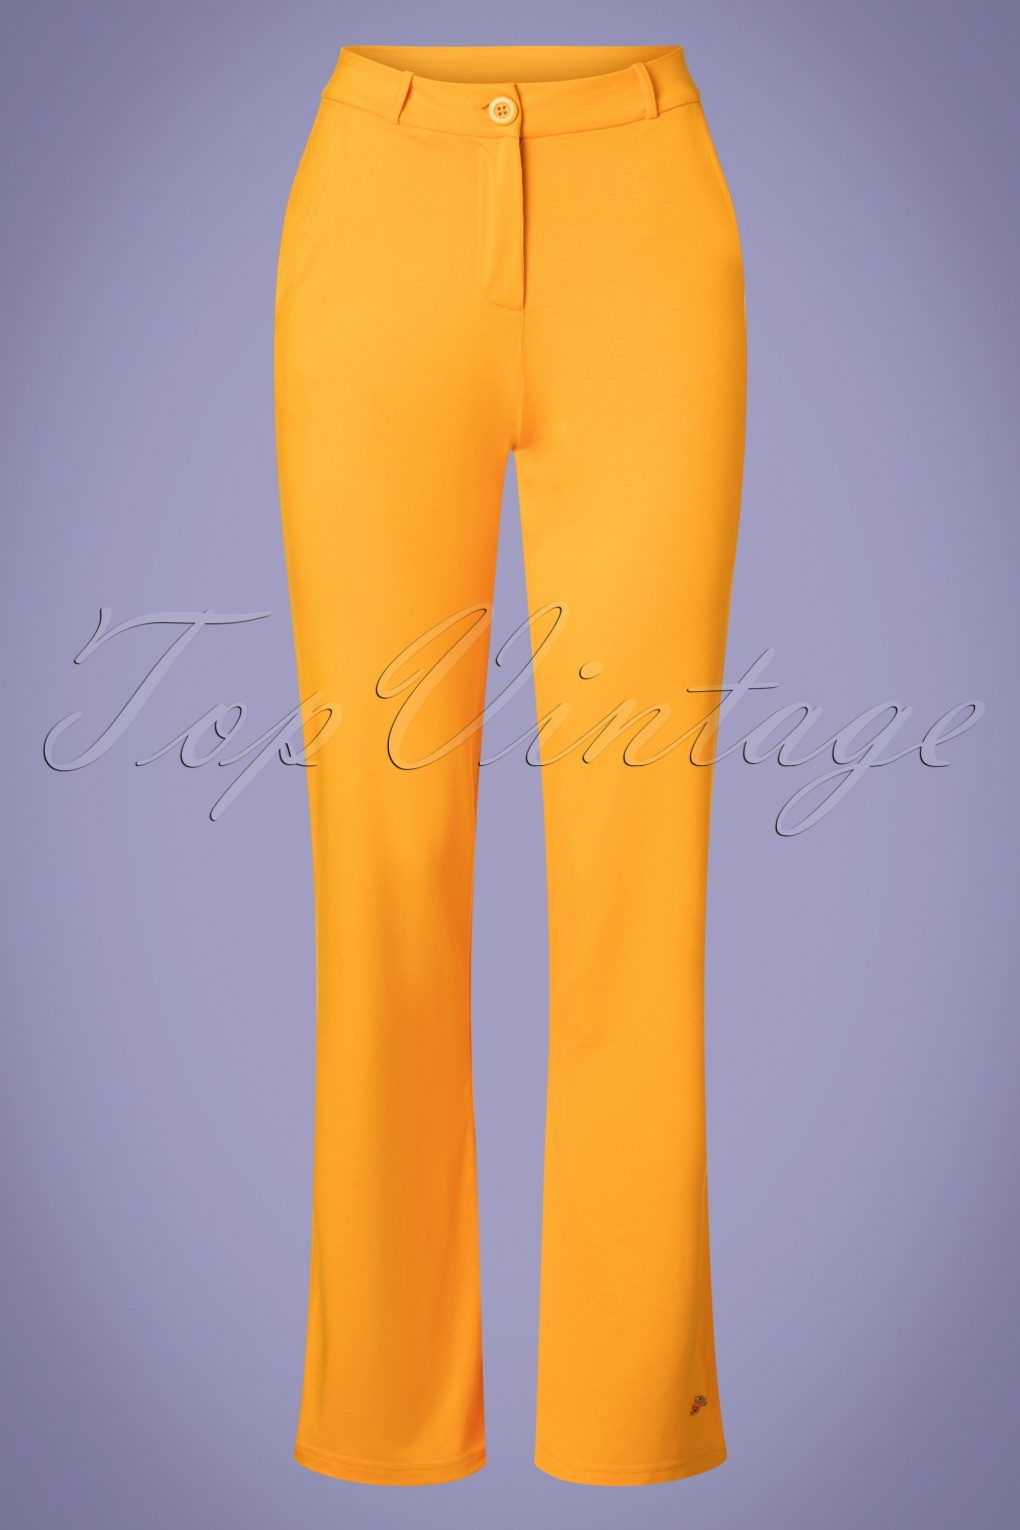 60s – 70s Pants, Jeans, Hippie, Bell Bottoms, Jumpsuits 60s Babs Baggy Trousers in Gold Yellow �65.67 AT vintagedancer.com